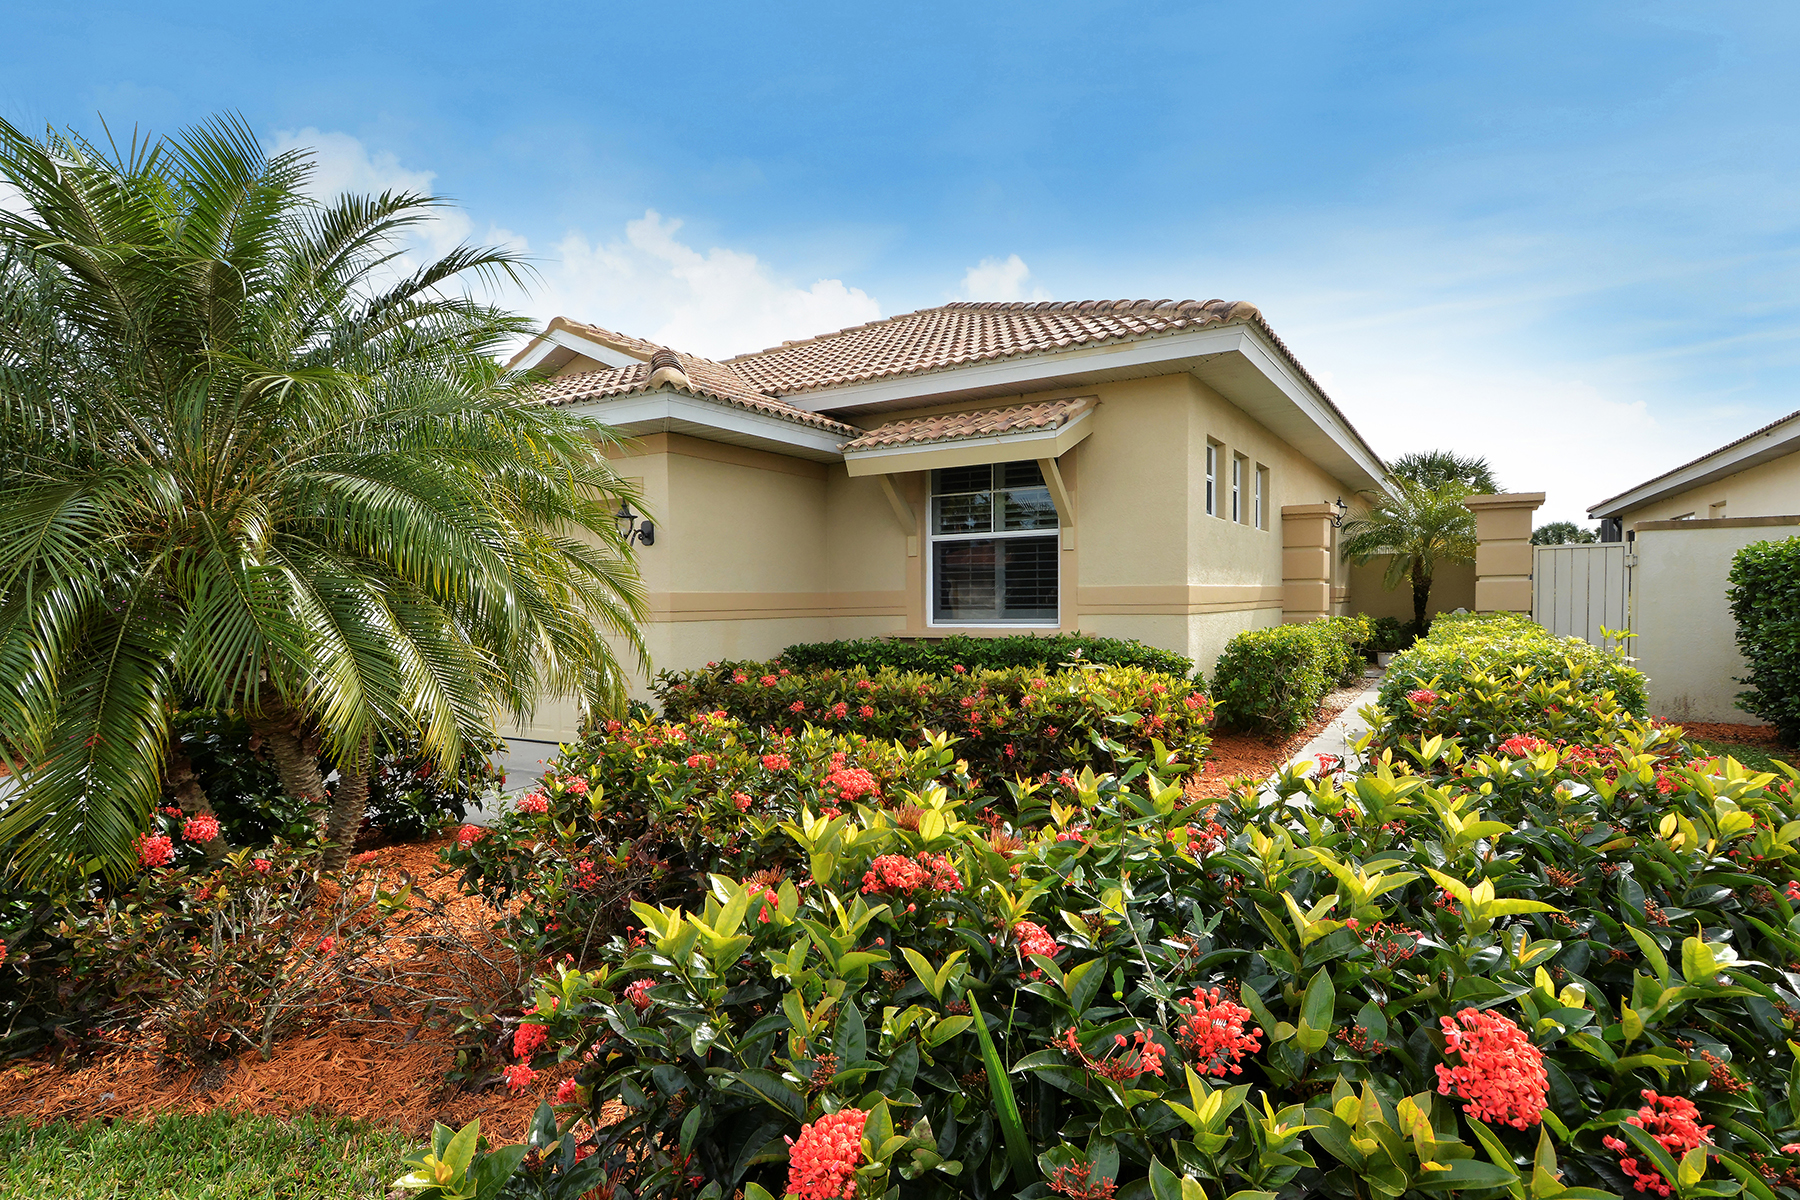 Villa per Vendita alle ore VENETIAN GOLF & RIVER CLUB 289 Padova Way North Venice, Florida 34275 Stati Uniti